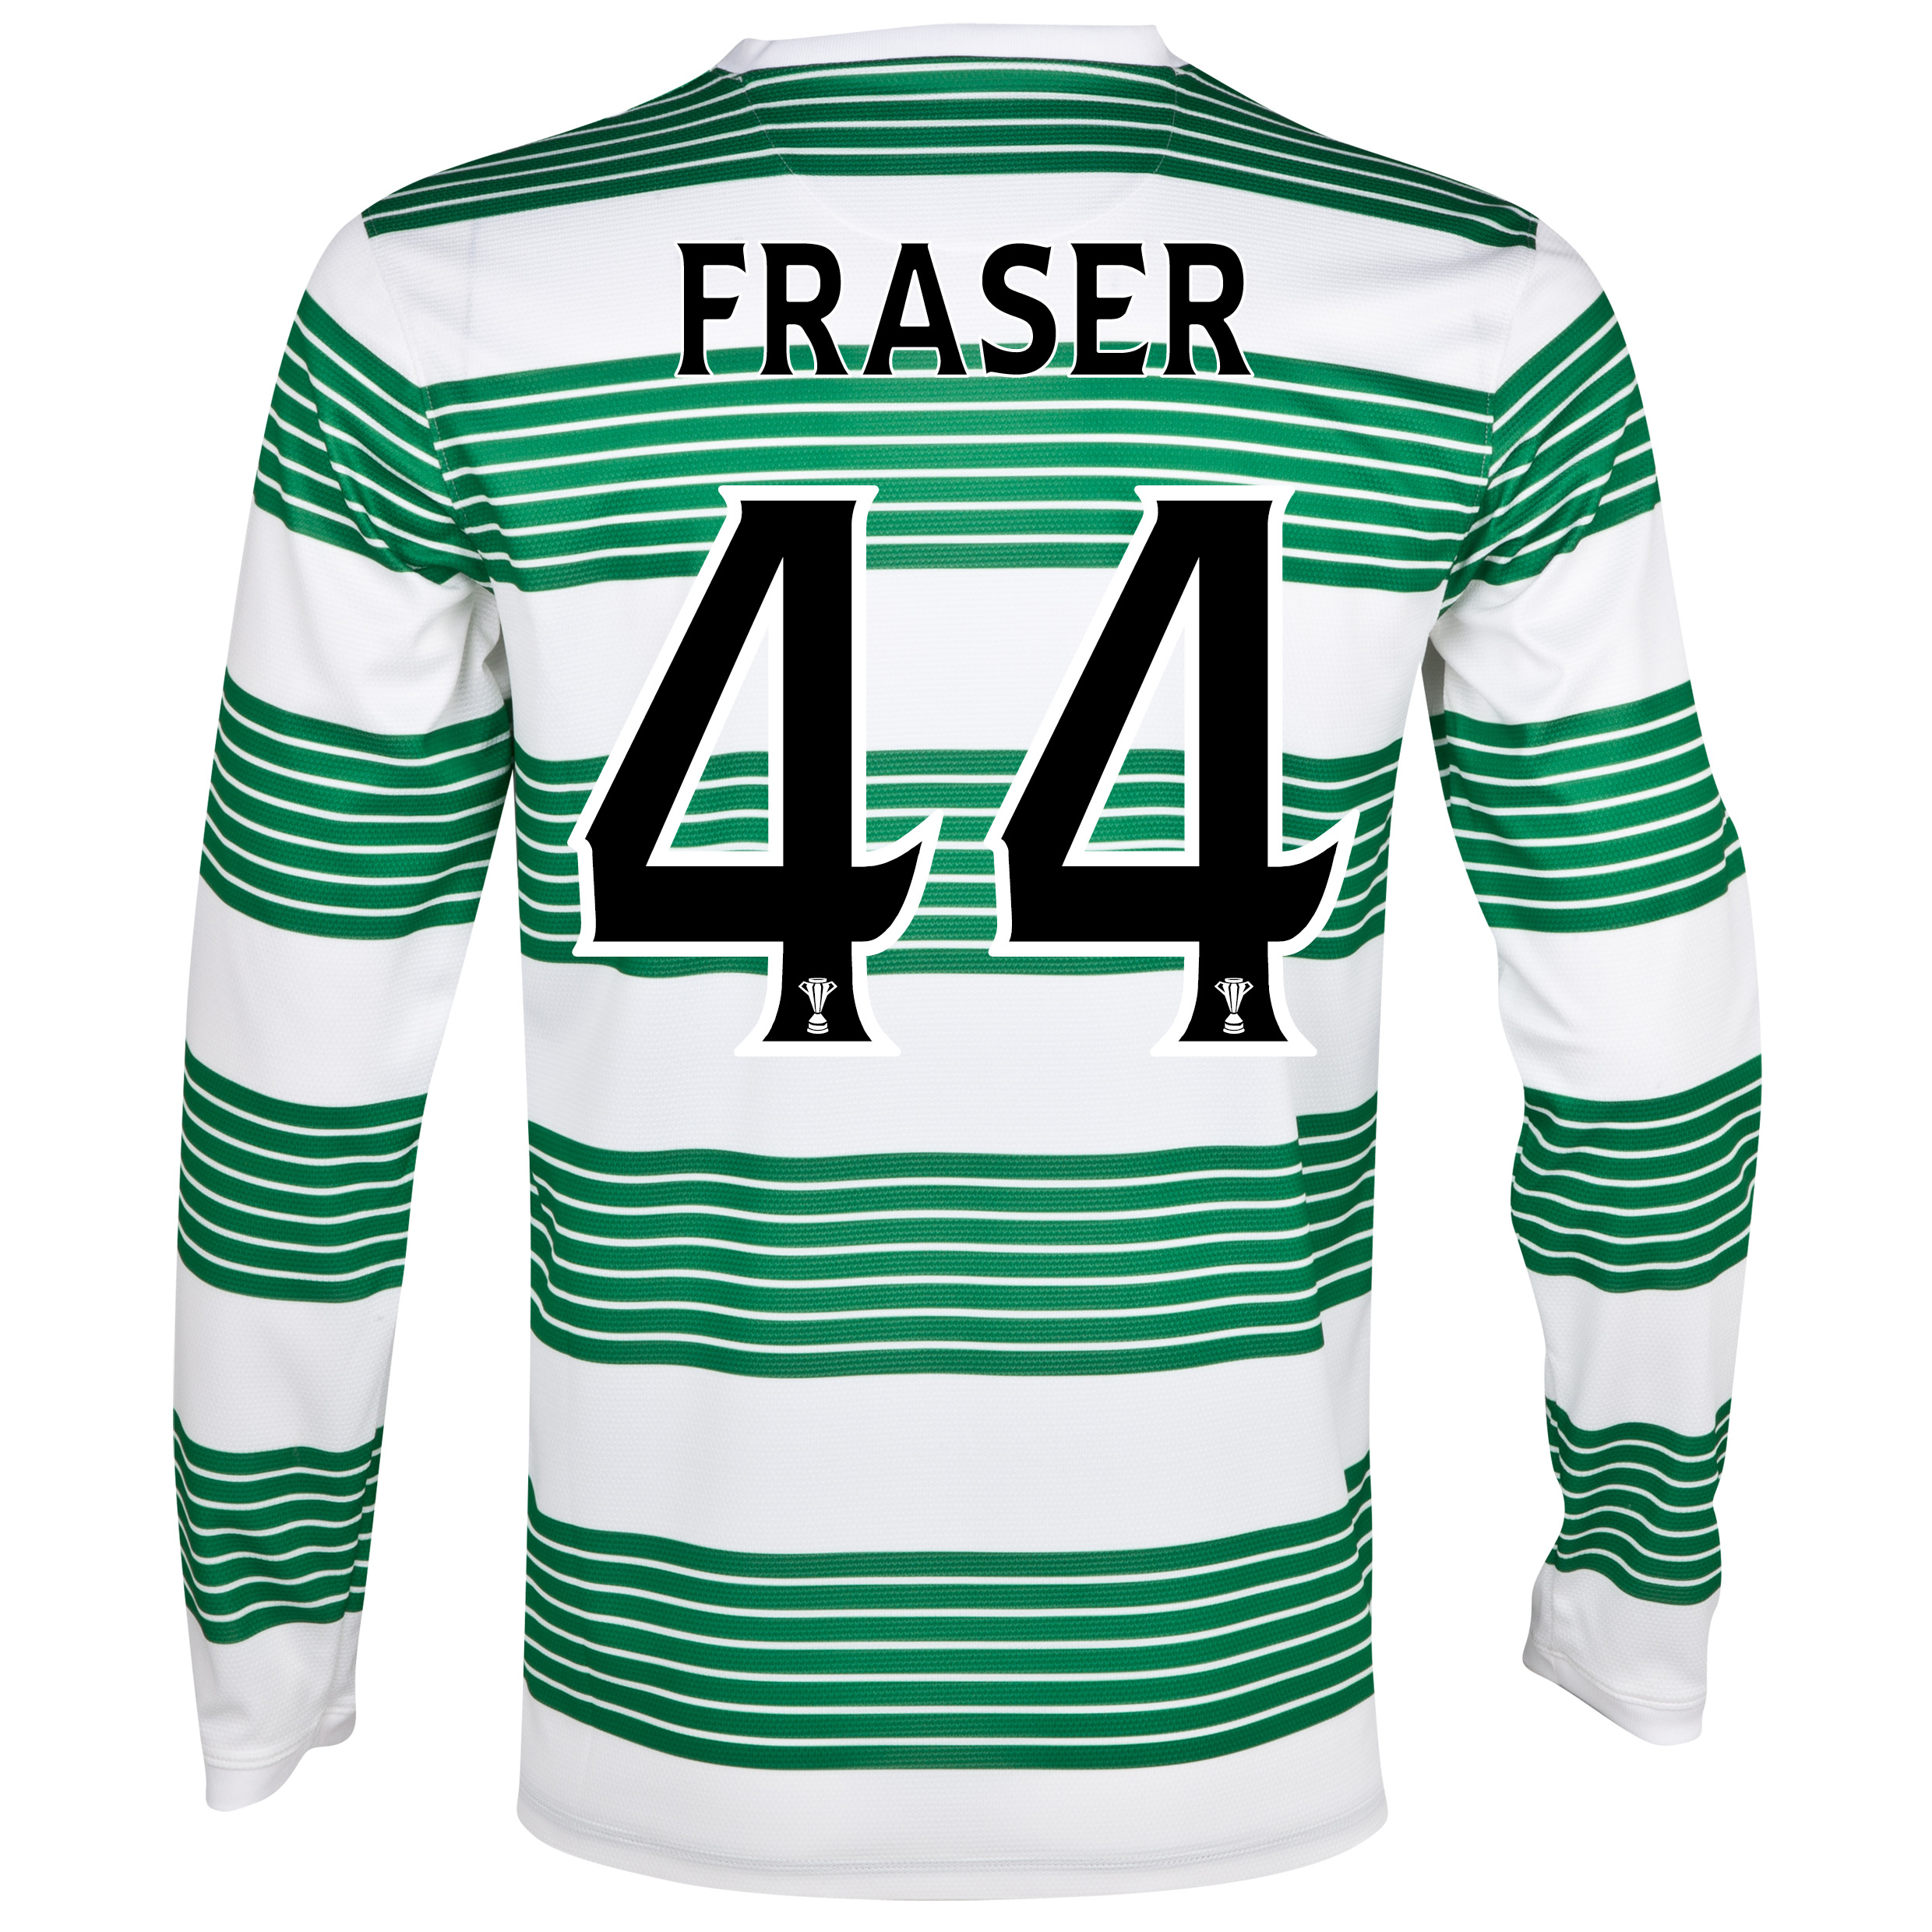 Celtic Home Shirt 2013/15 - L/S- Unsponsored with Fraser 44 printing